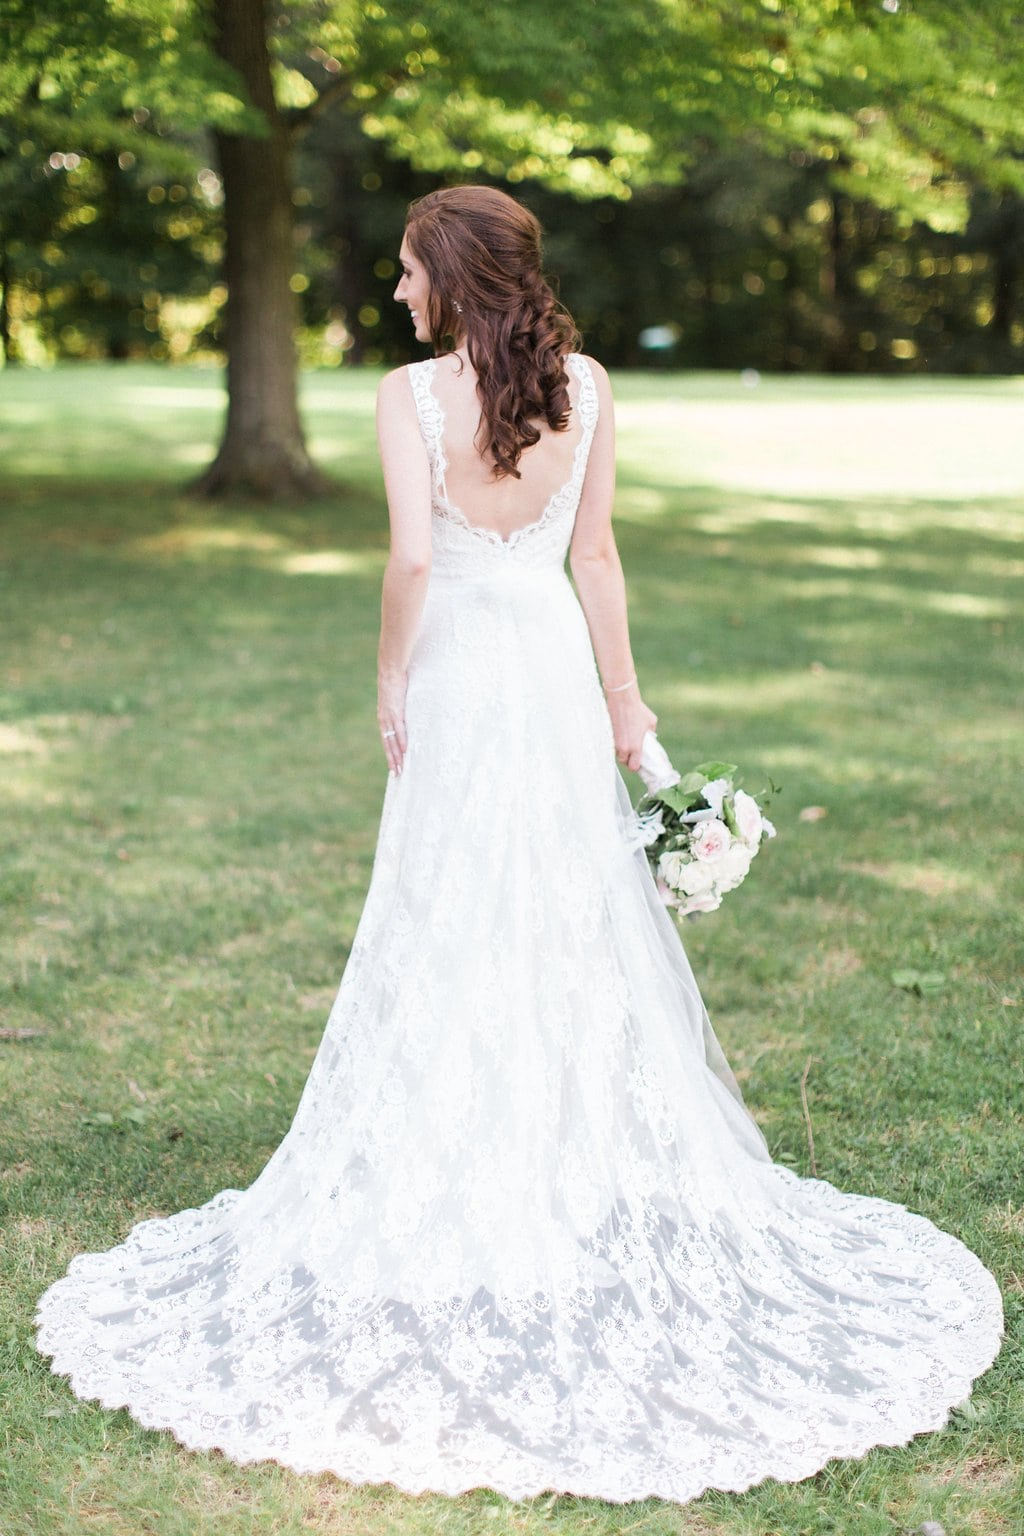 Bridal portrait of back of wedding dress with woman holding bouquet